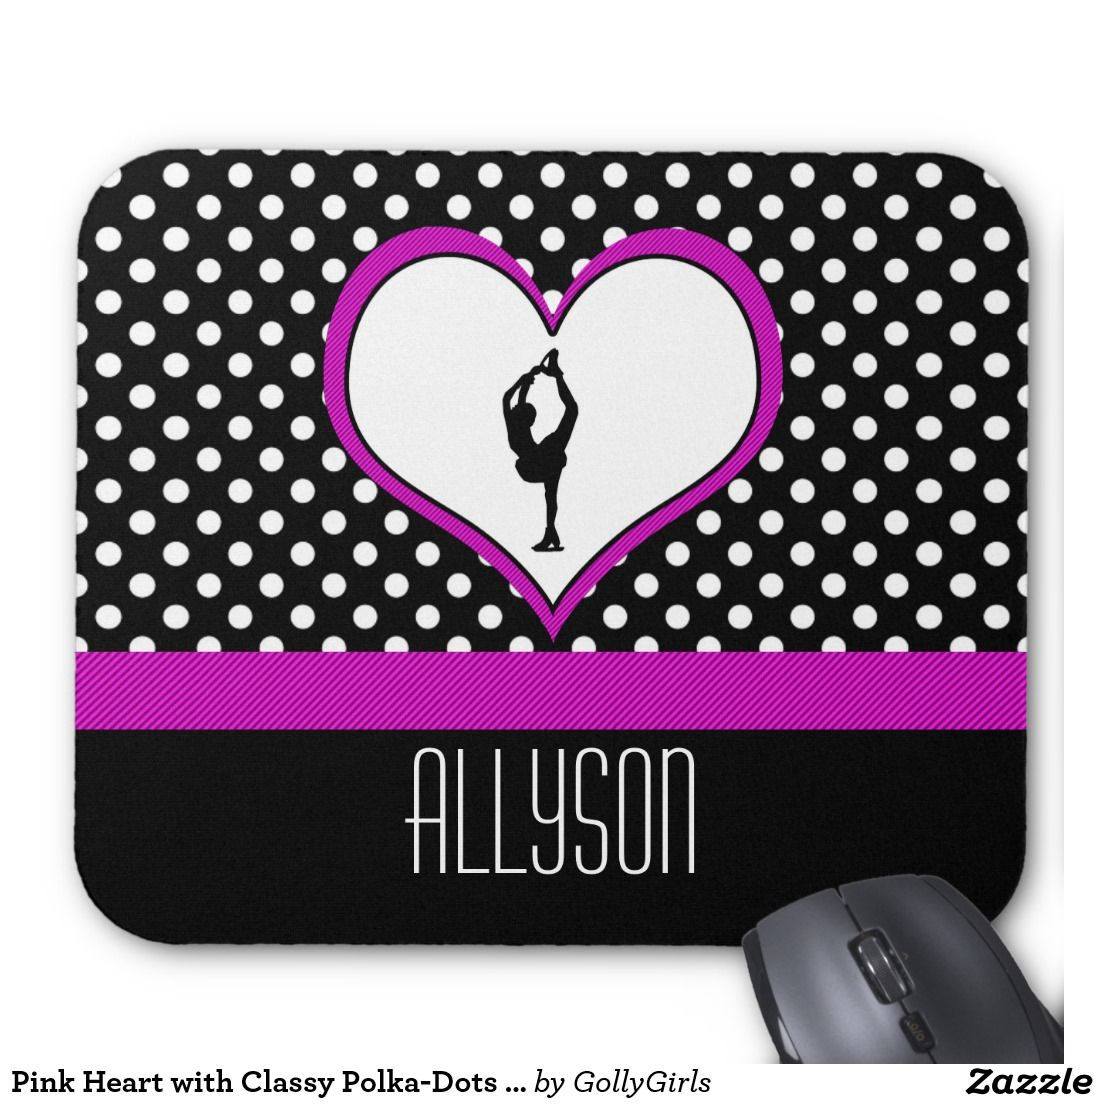 Pink Heart with Classy Polka-Dots Figure Skating Mouse Pad